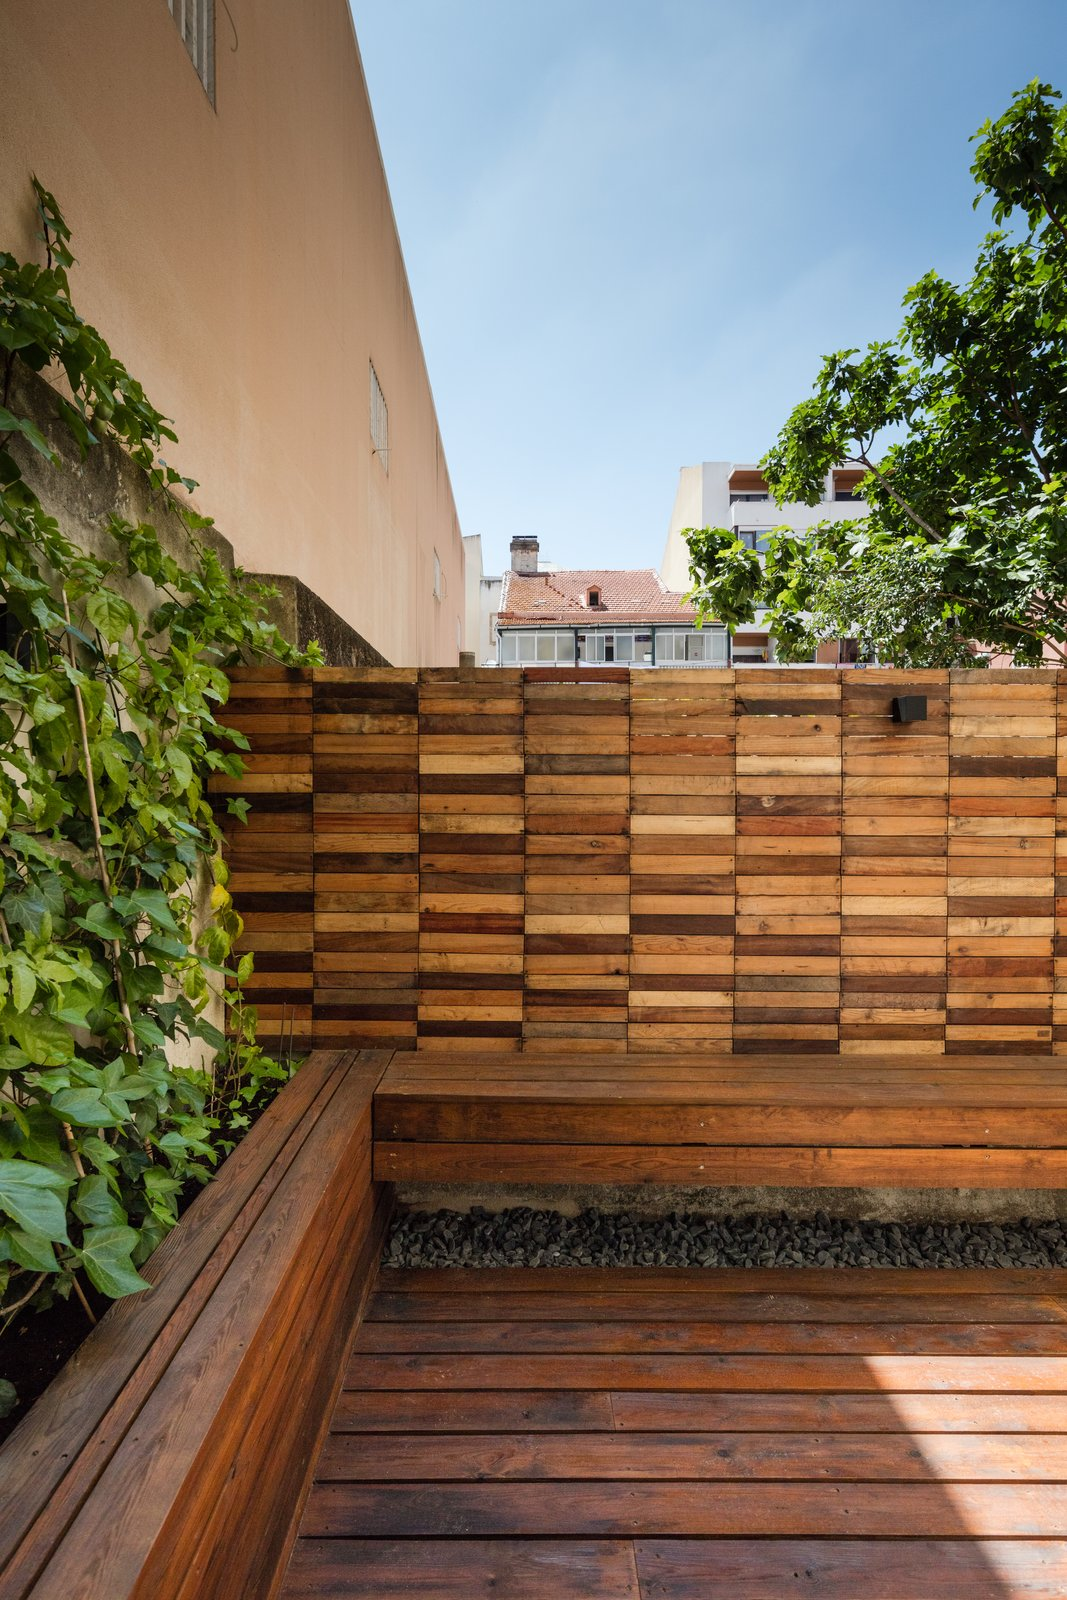 Tagged: Outdoor, Back Yard, Wood Patio, Porch, Deck, Small Patio, Porch, Deck, Horizontal Fences, Wall, and Wood Fences, Wall.  Rua Maria Loft by KEMA studio